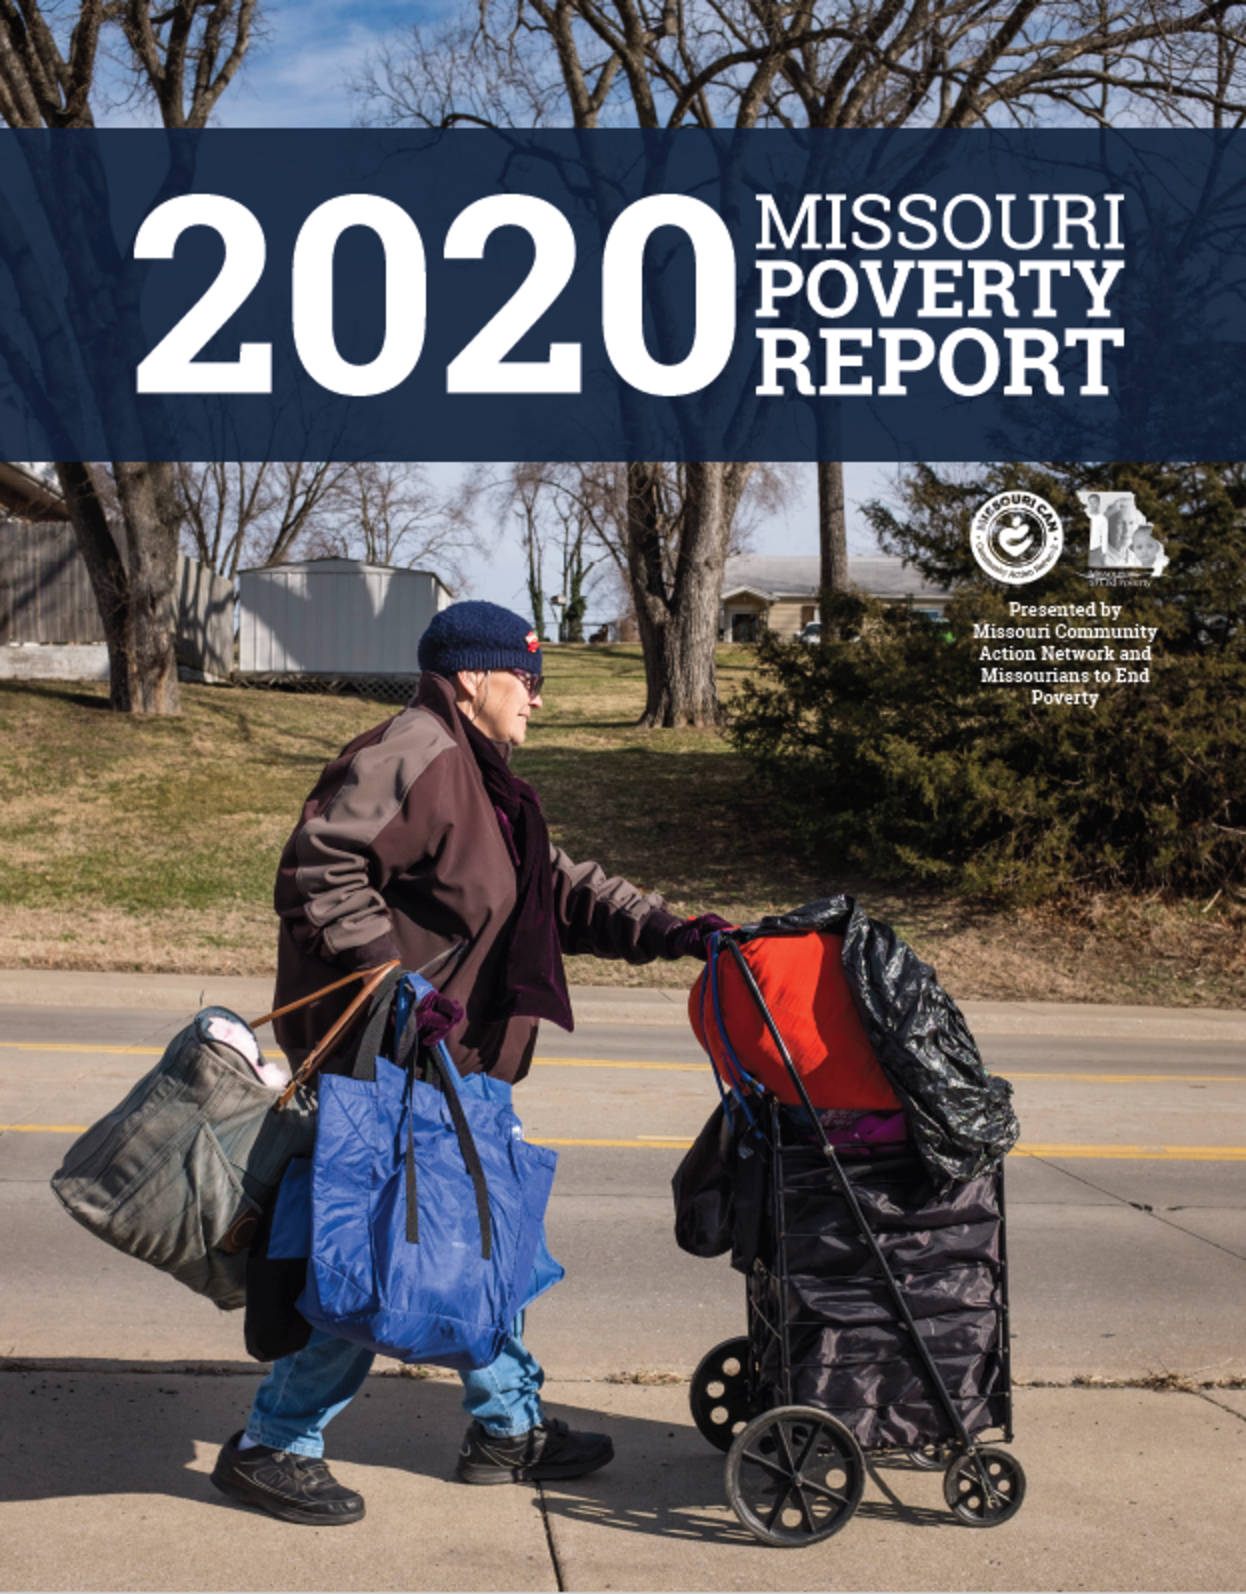 2020 Missouri Poverty Report